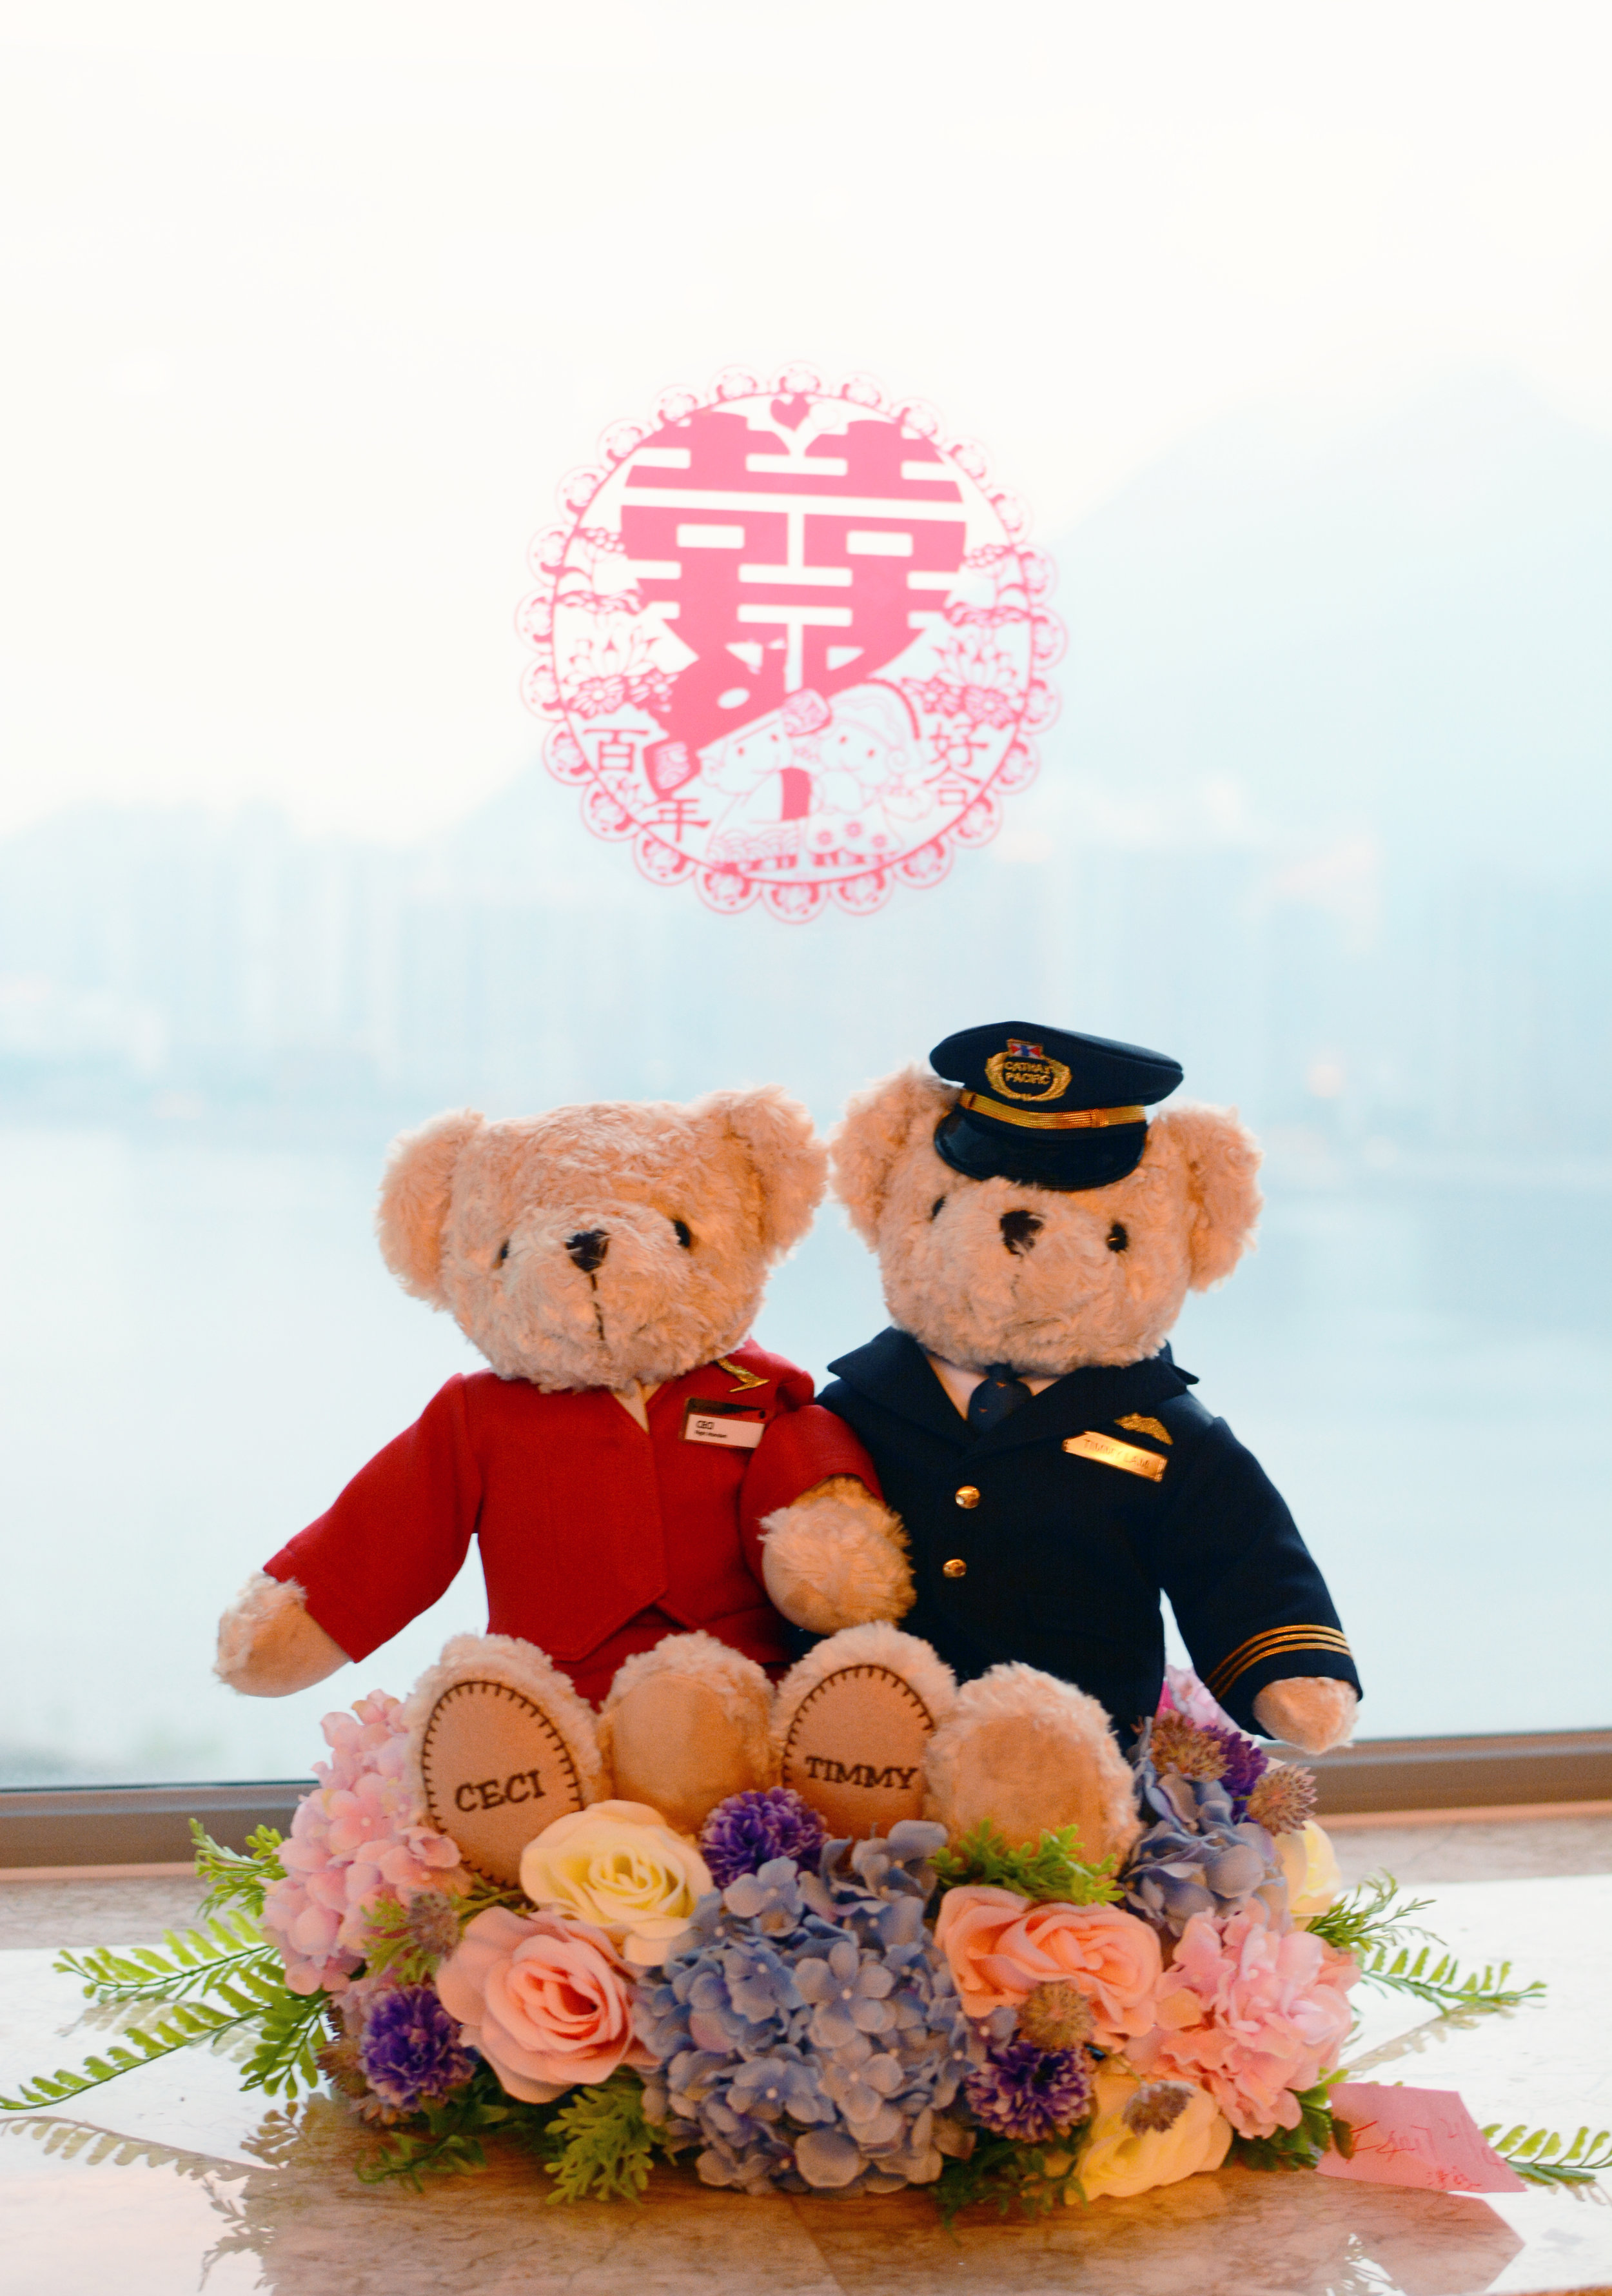 Ceci and Timmy had custom bears created--Ceci is a flight attendant, and Timmy is a pilot!